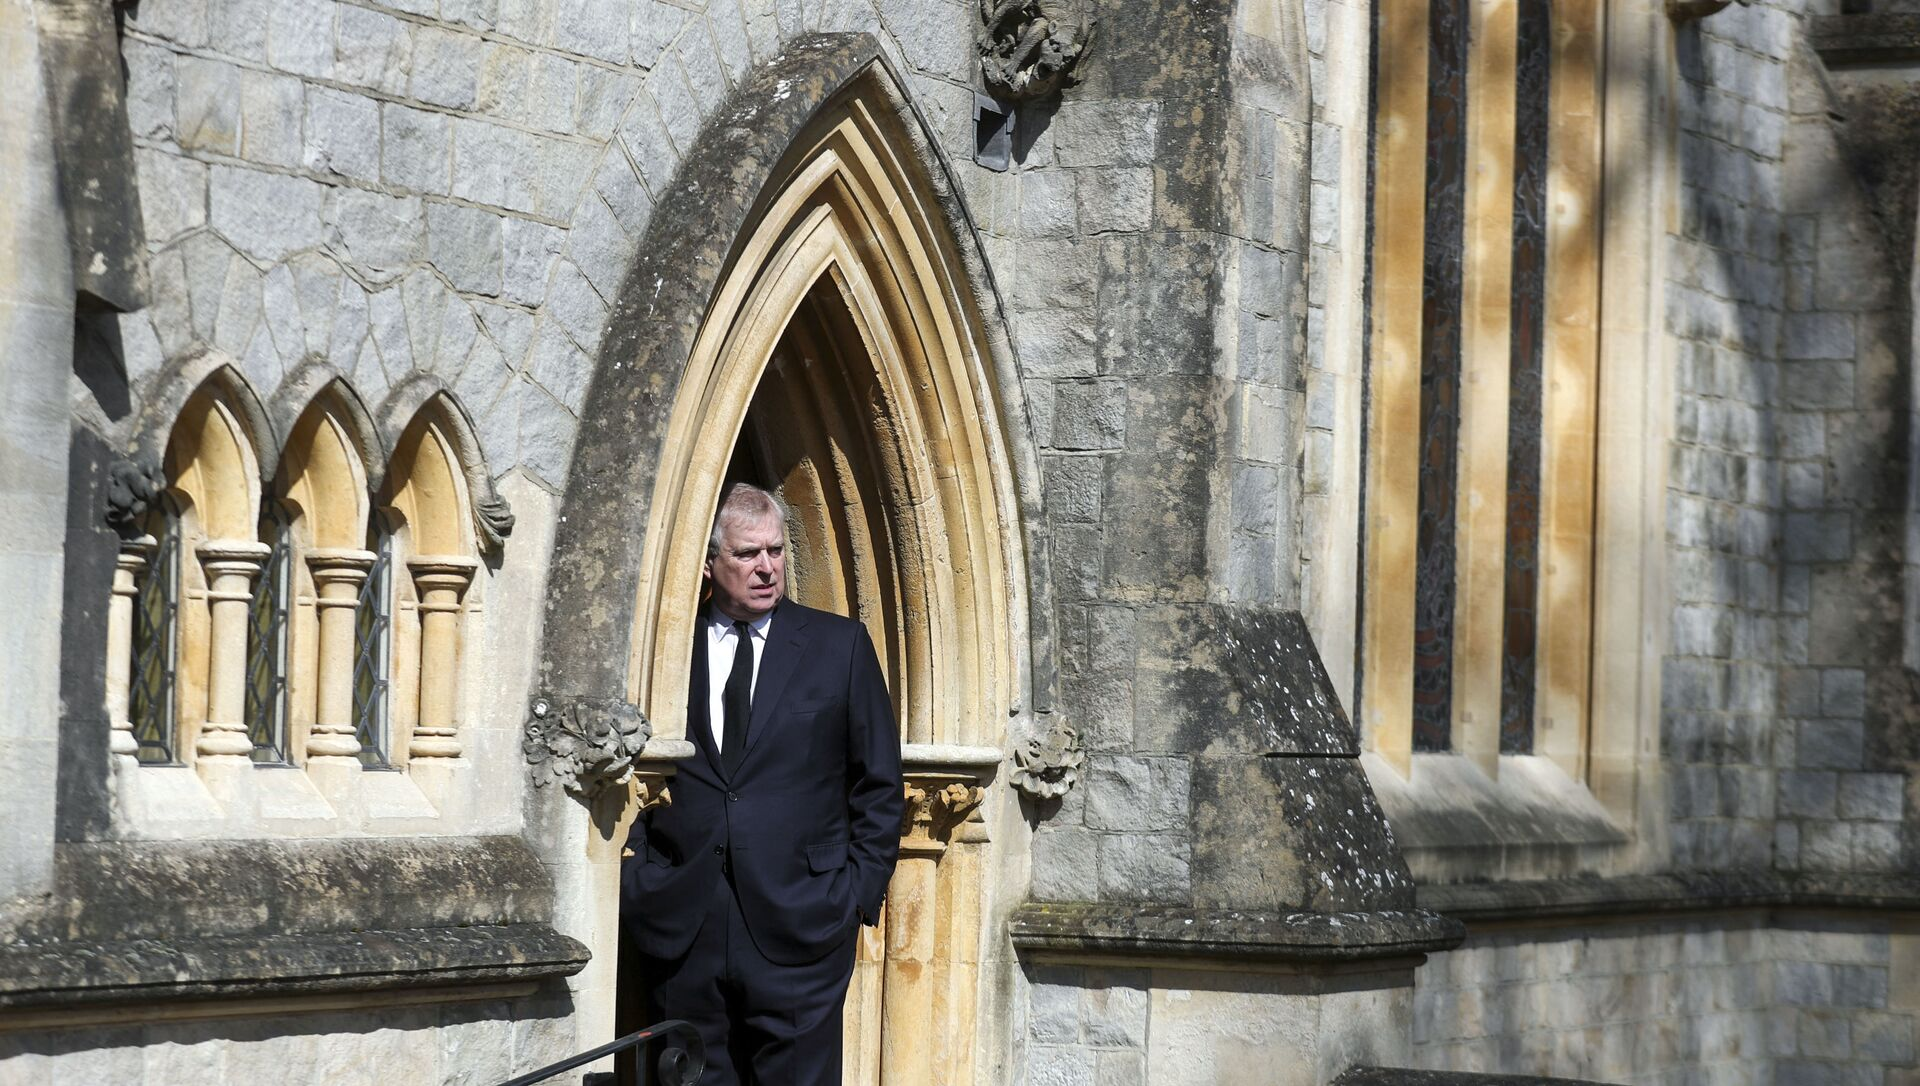 Britain's Prince Andrew, Duke of York, attends Sunday service at the Royal Chapel of All Saints, at Royal Lodge, in Windsor on April 11, 2021, two days after the death of his father Britain's Prince Philip, Duke of Edinburgh. - Queen Elizabeth II has described feeling a huge void in her life following the death of her husband Prince Philip, their son Prince Andrew said on April 11. Andrew, the couple's second son, said following family prayers at Windsor Castle that his mother was contemplating her husband's passing after his death on April 9 aged 99. - Sputnik International, 1920, 13.08.2021